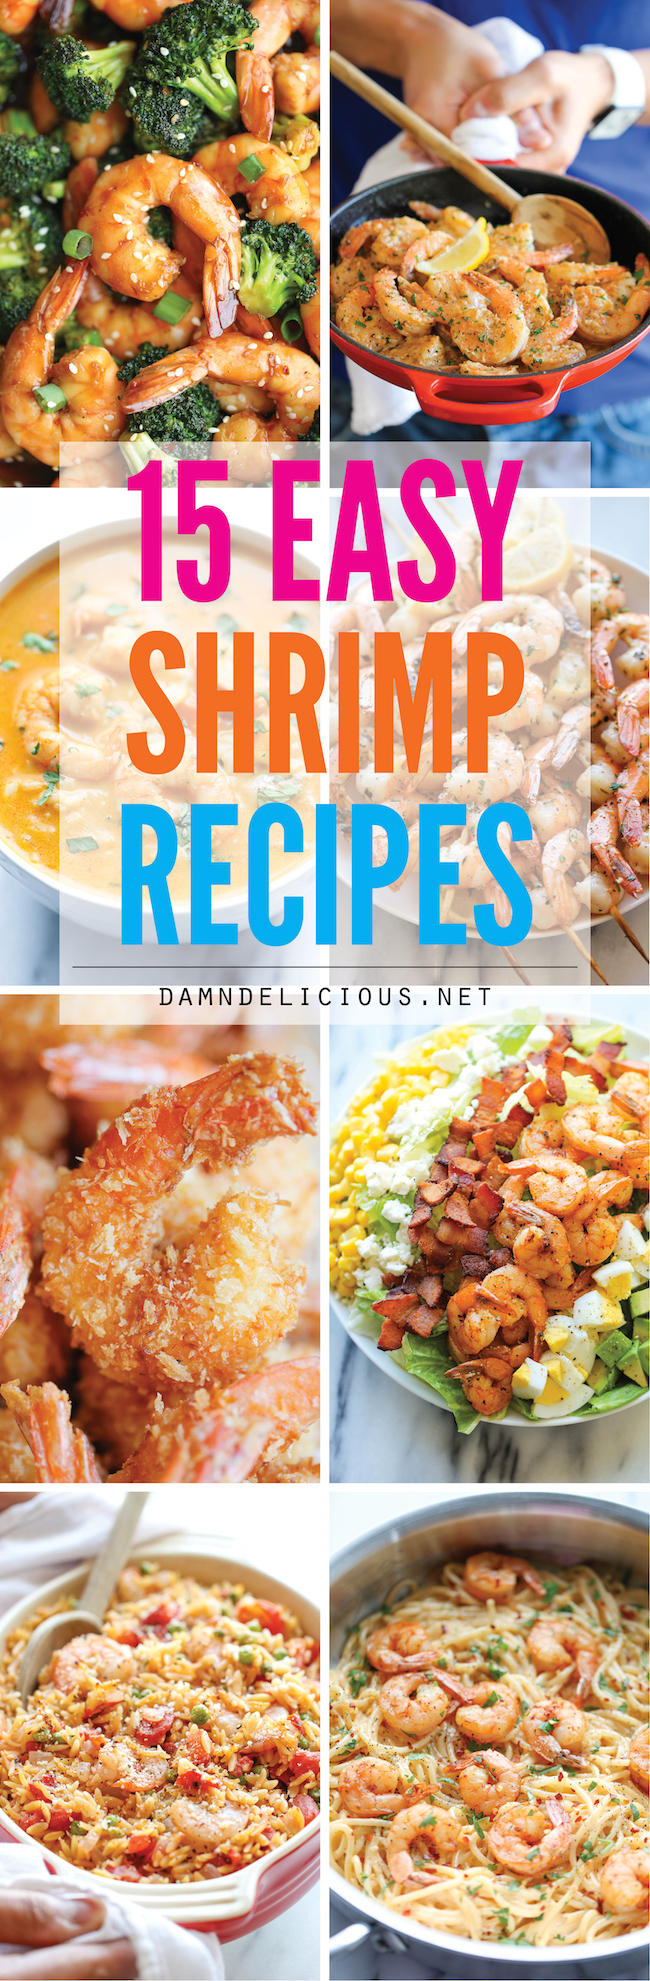 15 easy shrimp recipes damn delicious 15 easy shrimp recipes quick and easy shrimp recipes for any night of the week forumfinder Image collections